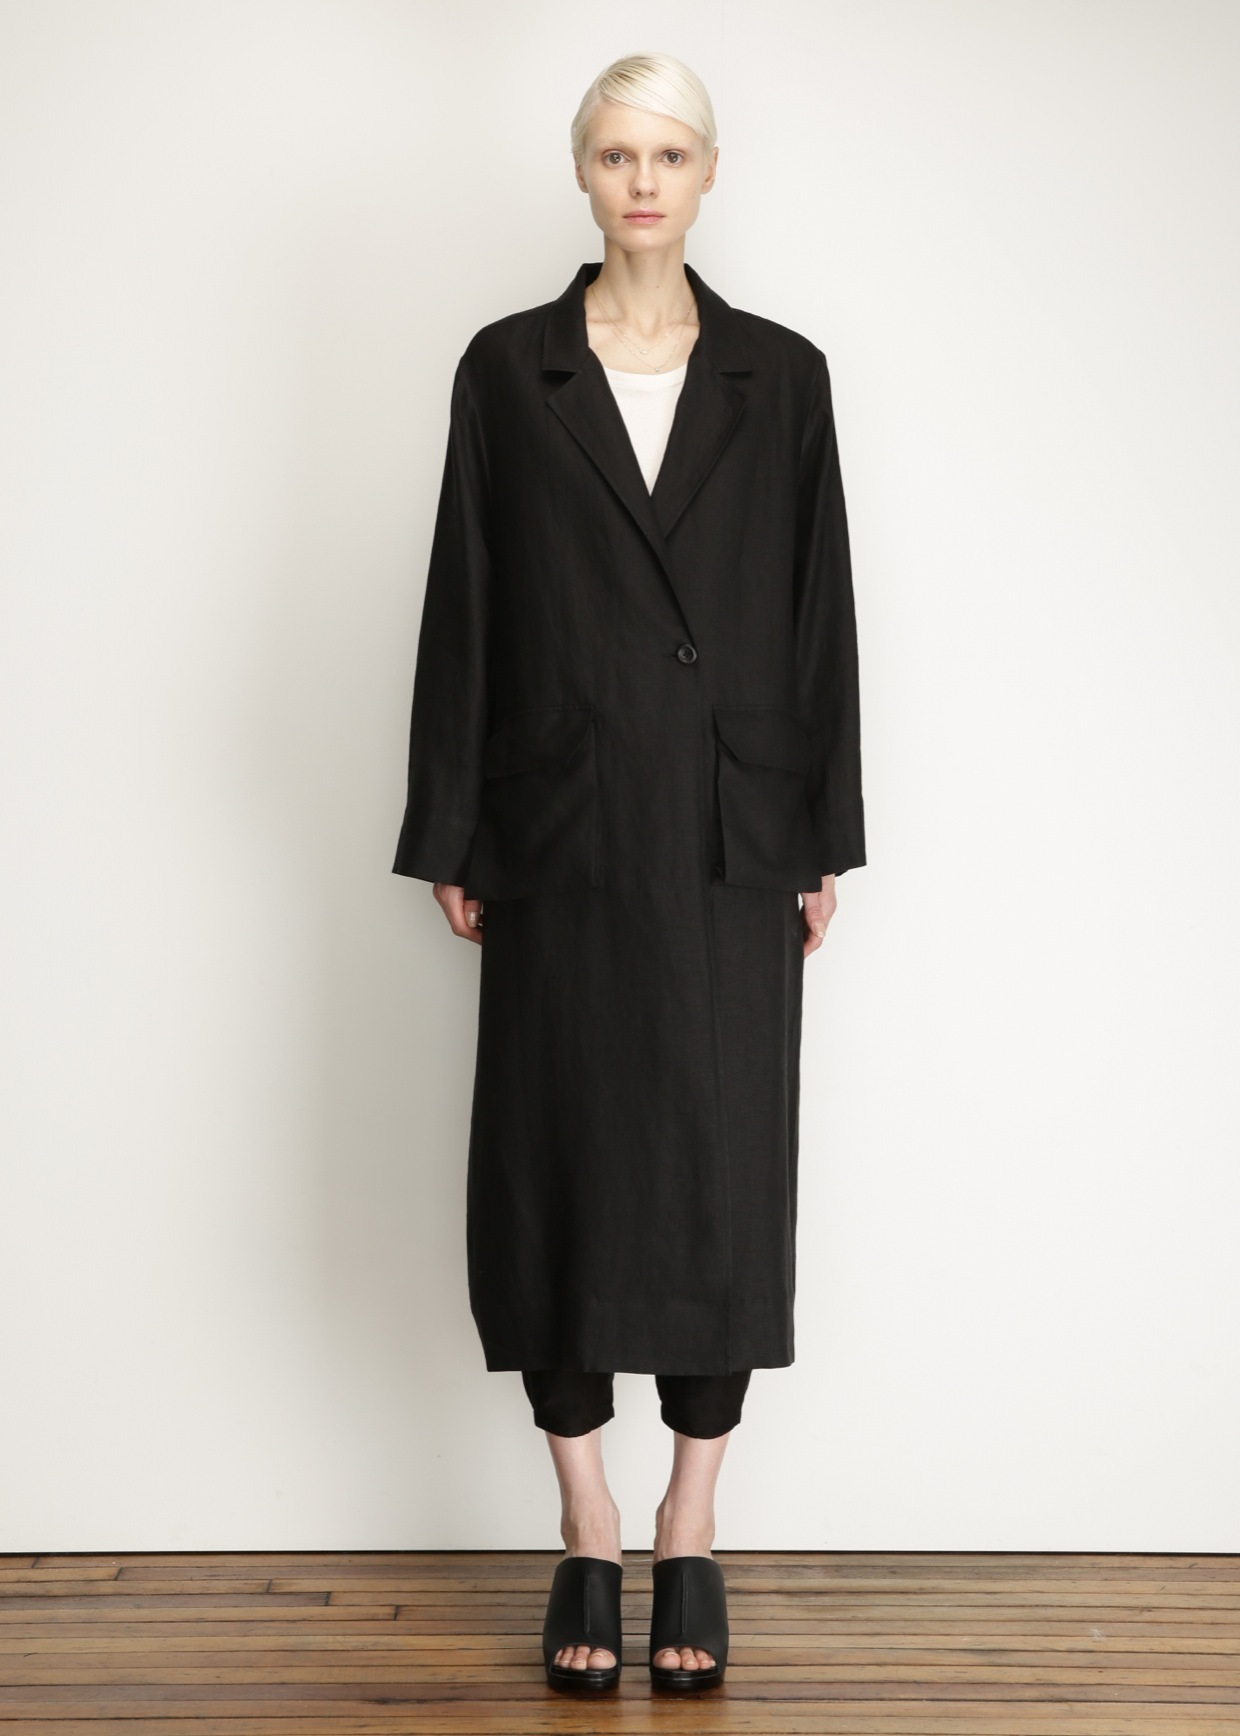 Free Shipping For Cheap Collections Cheap Online Raquel Allegra robe coat Amazing Price For Sale Cheap Sale With Credit Card Clearance New Styles 4fFcI